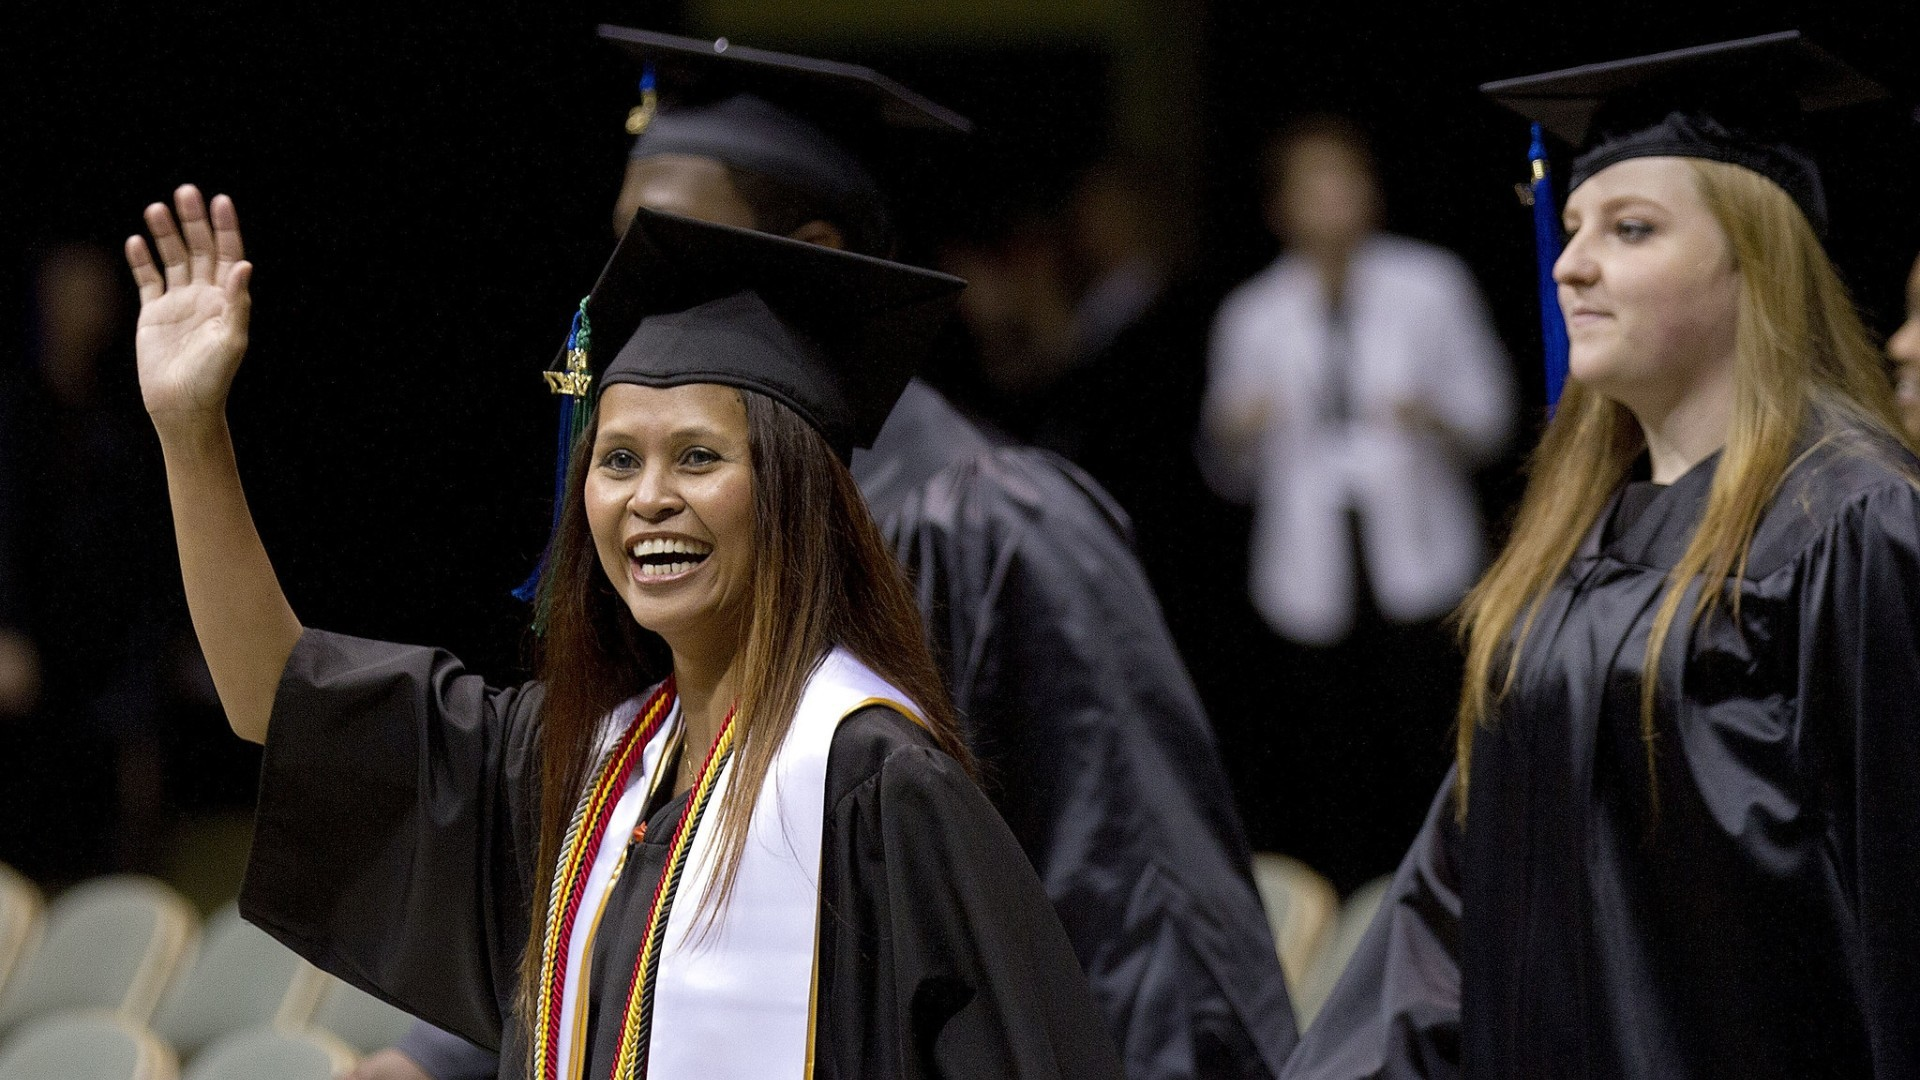 thomas nelson community college graduation 2017 daily press